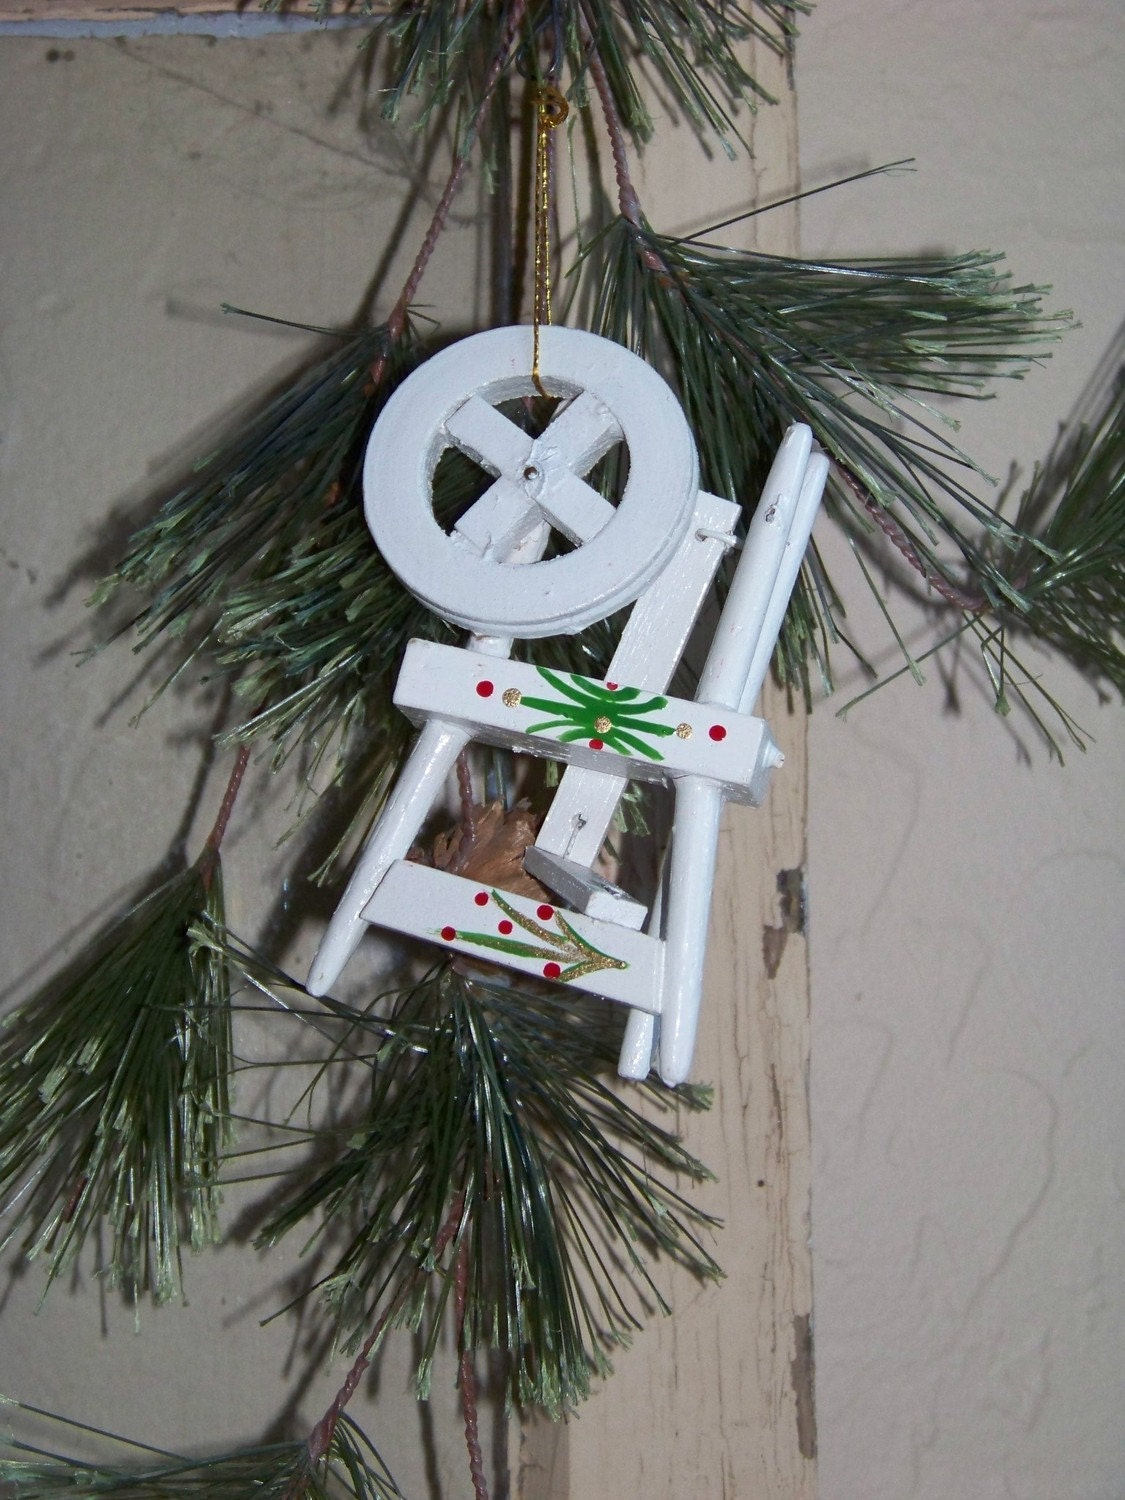 Vintage Wooden Spinning Wheel Christmas Ornament